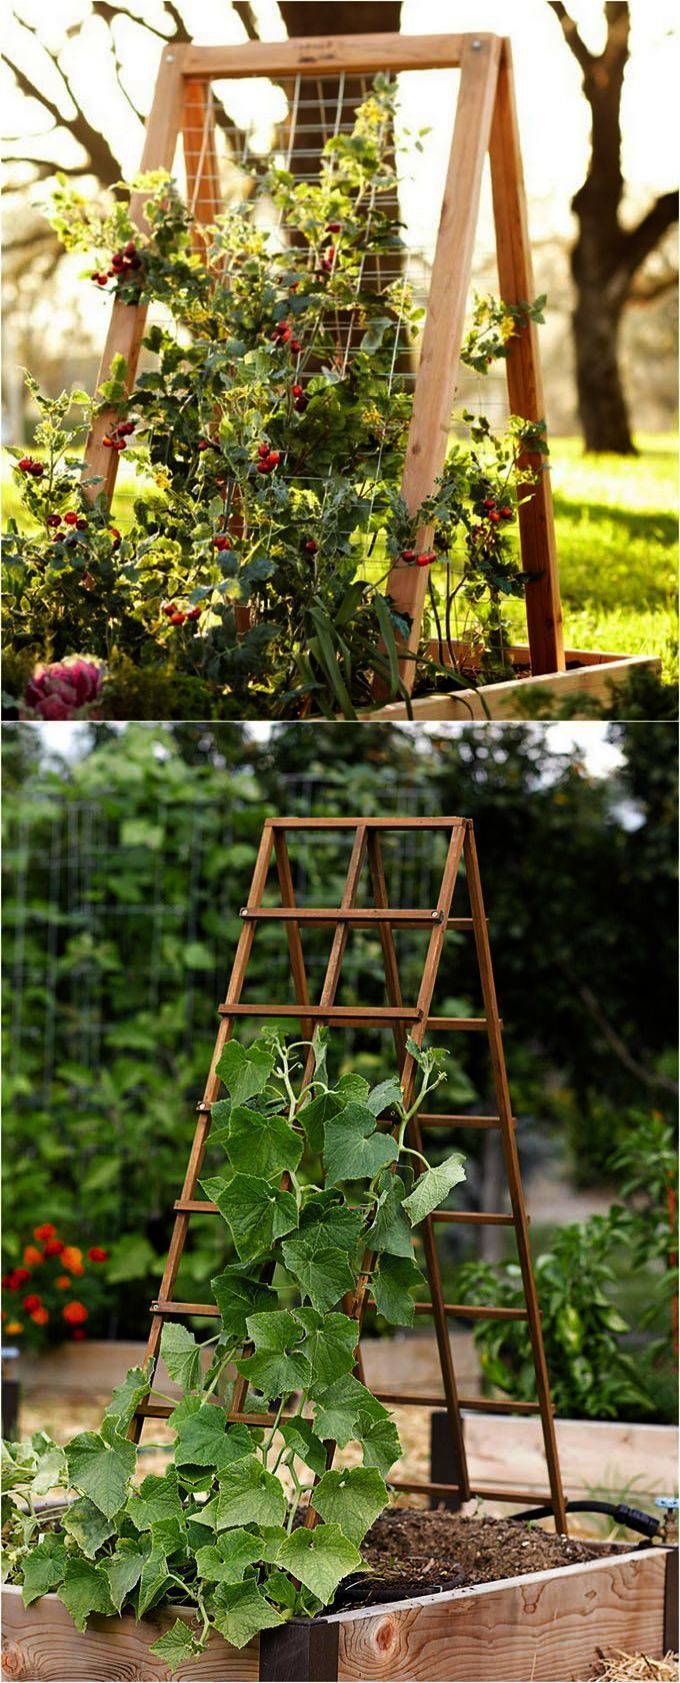 Good Pic Raised Garden Bed australia Ideas Elevated boxes